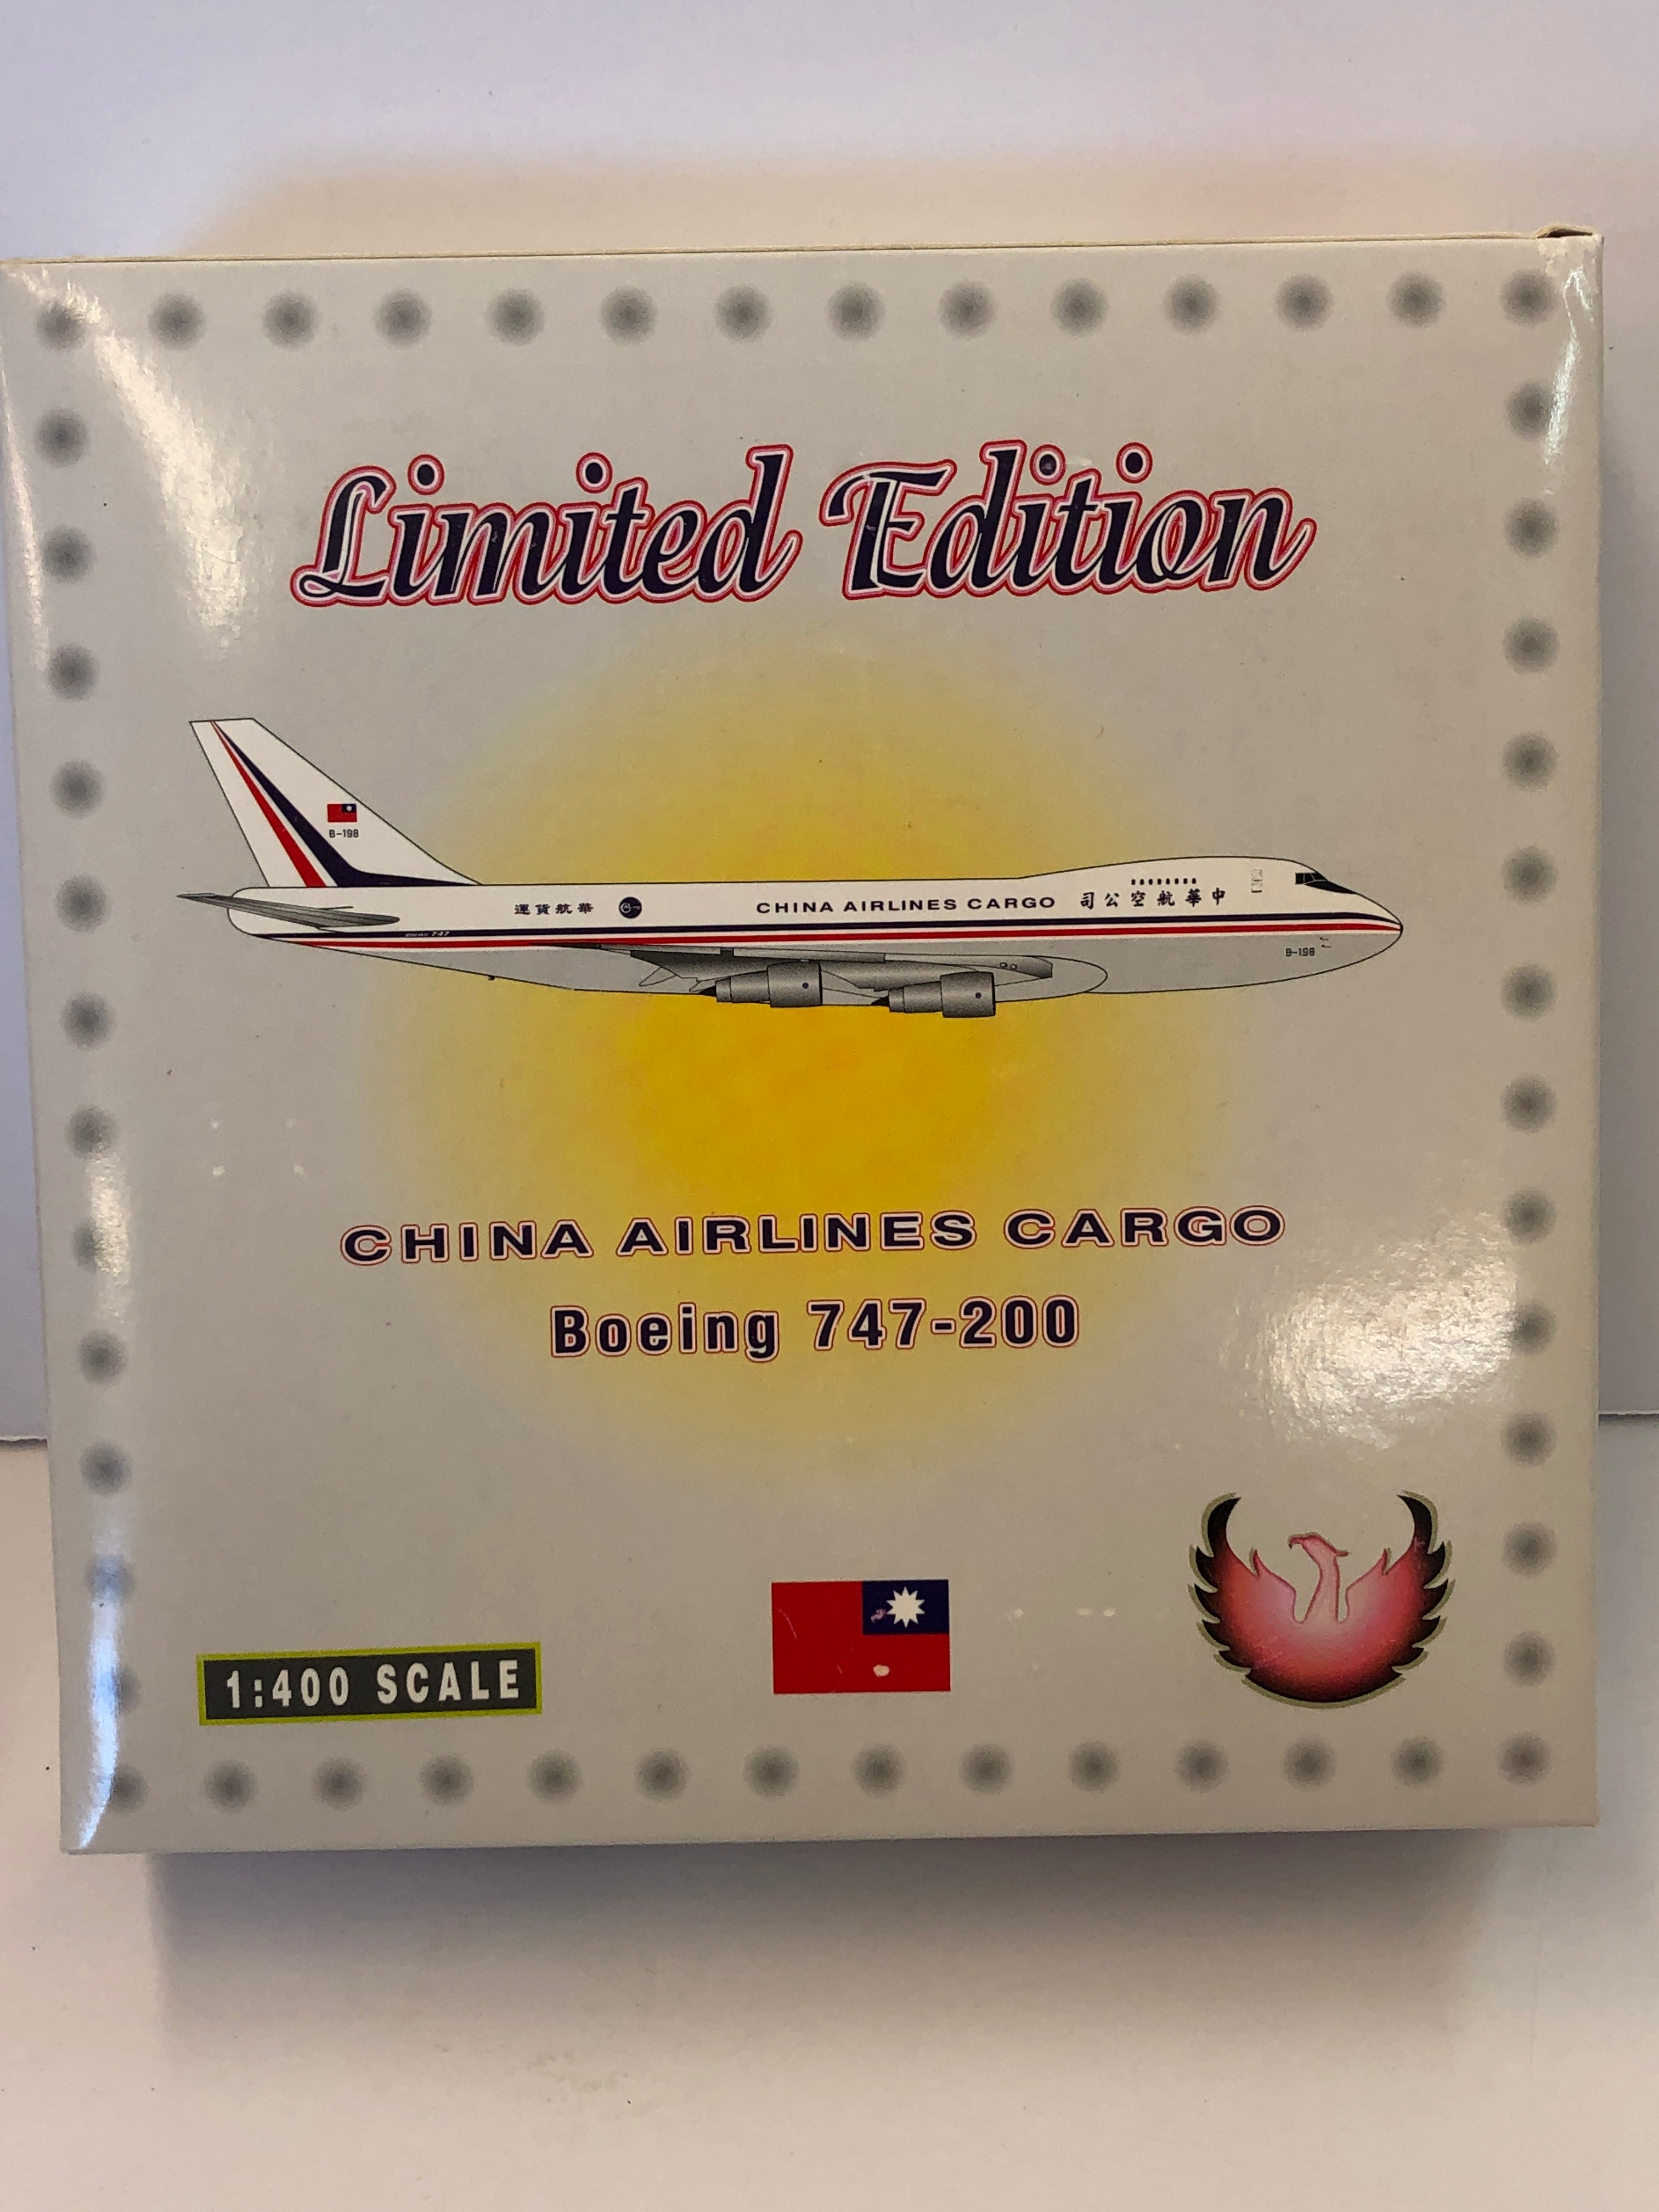 1:400 CHINA AIRLINES CARGO BOEING 747-200